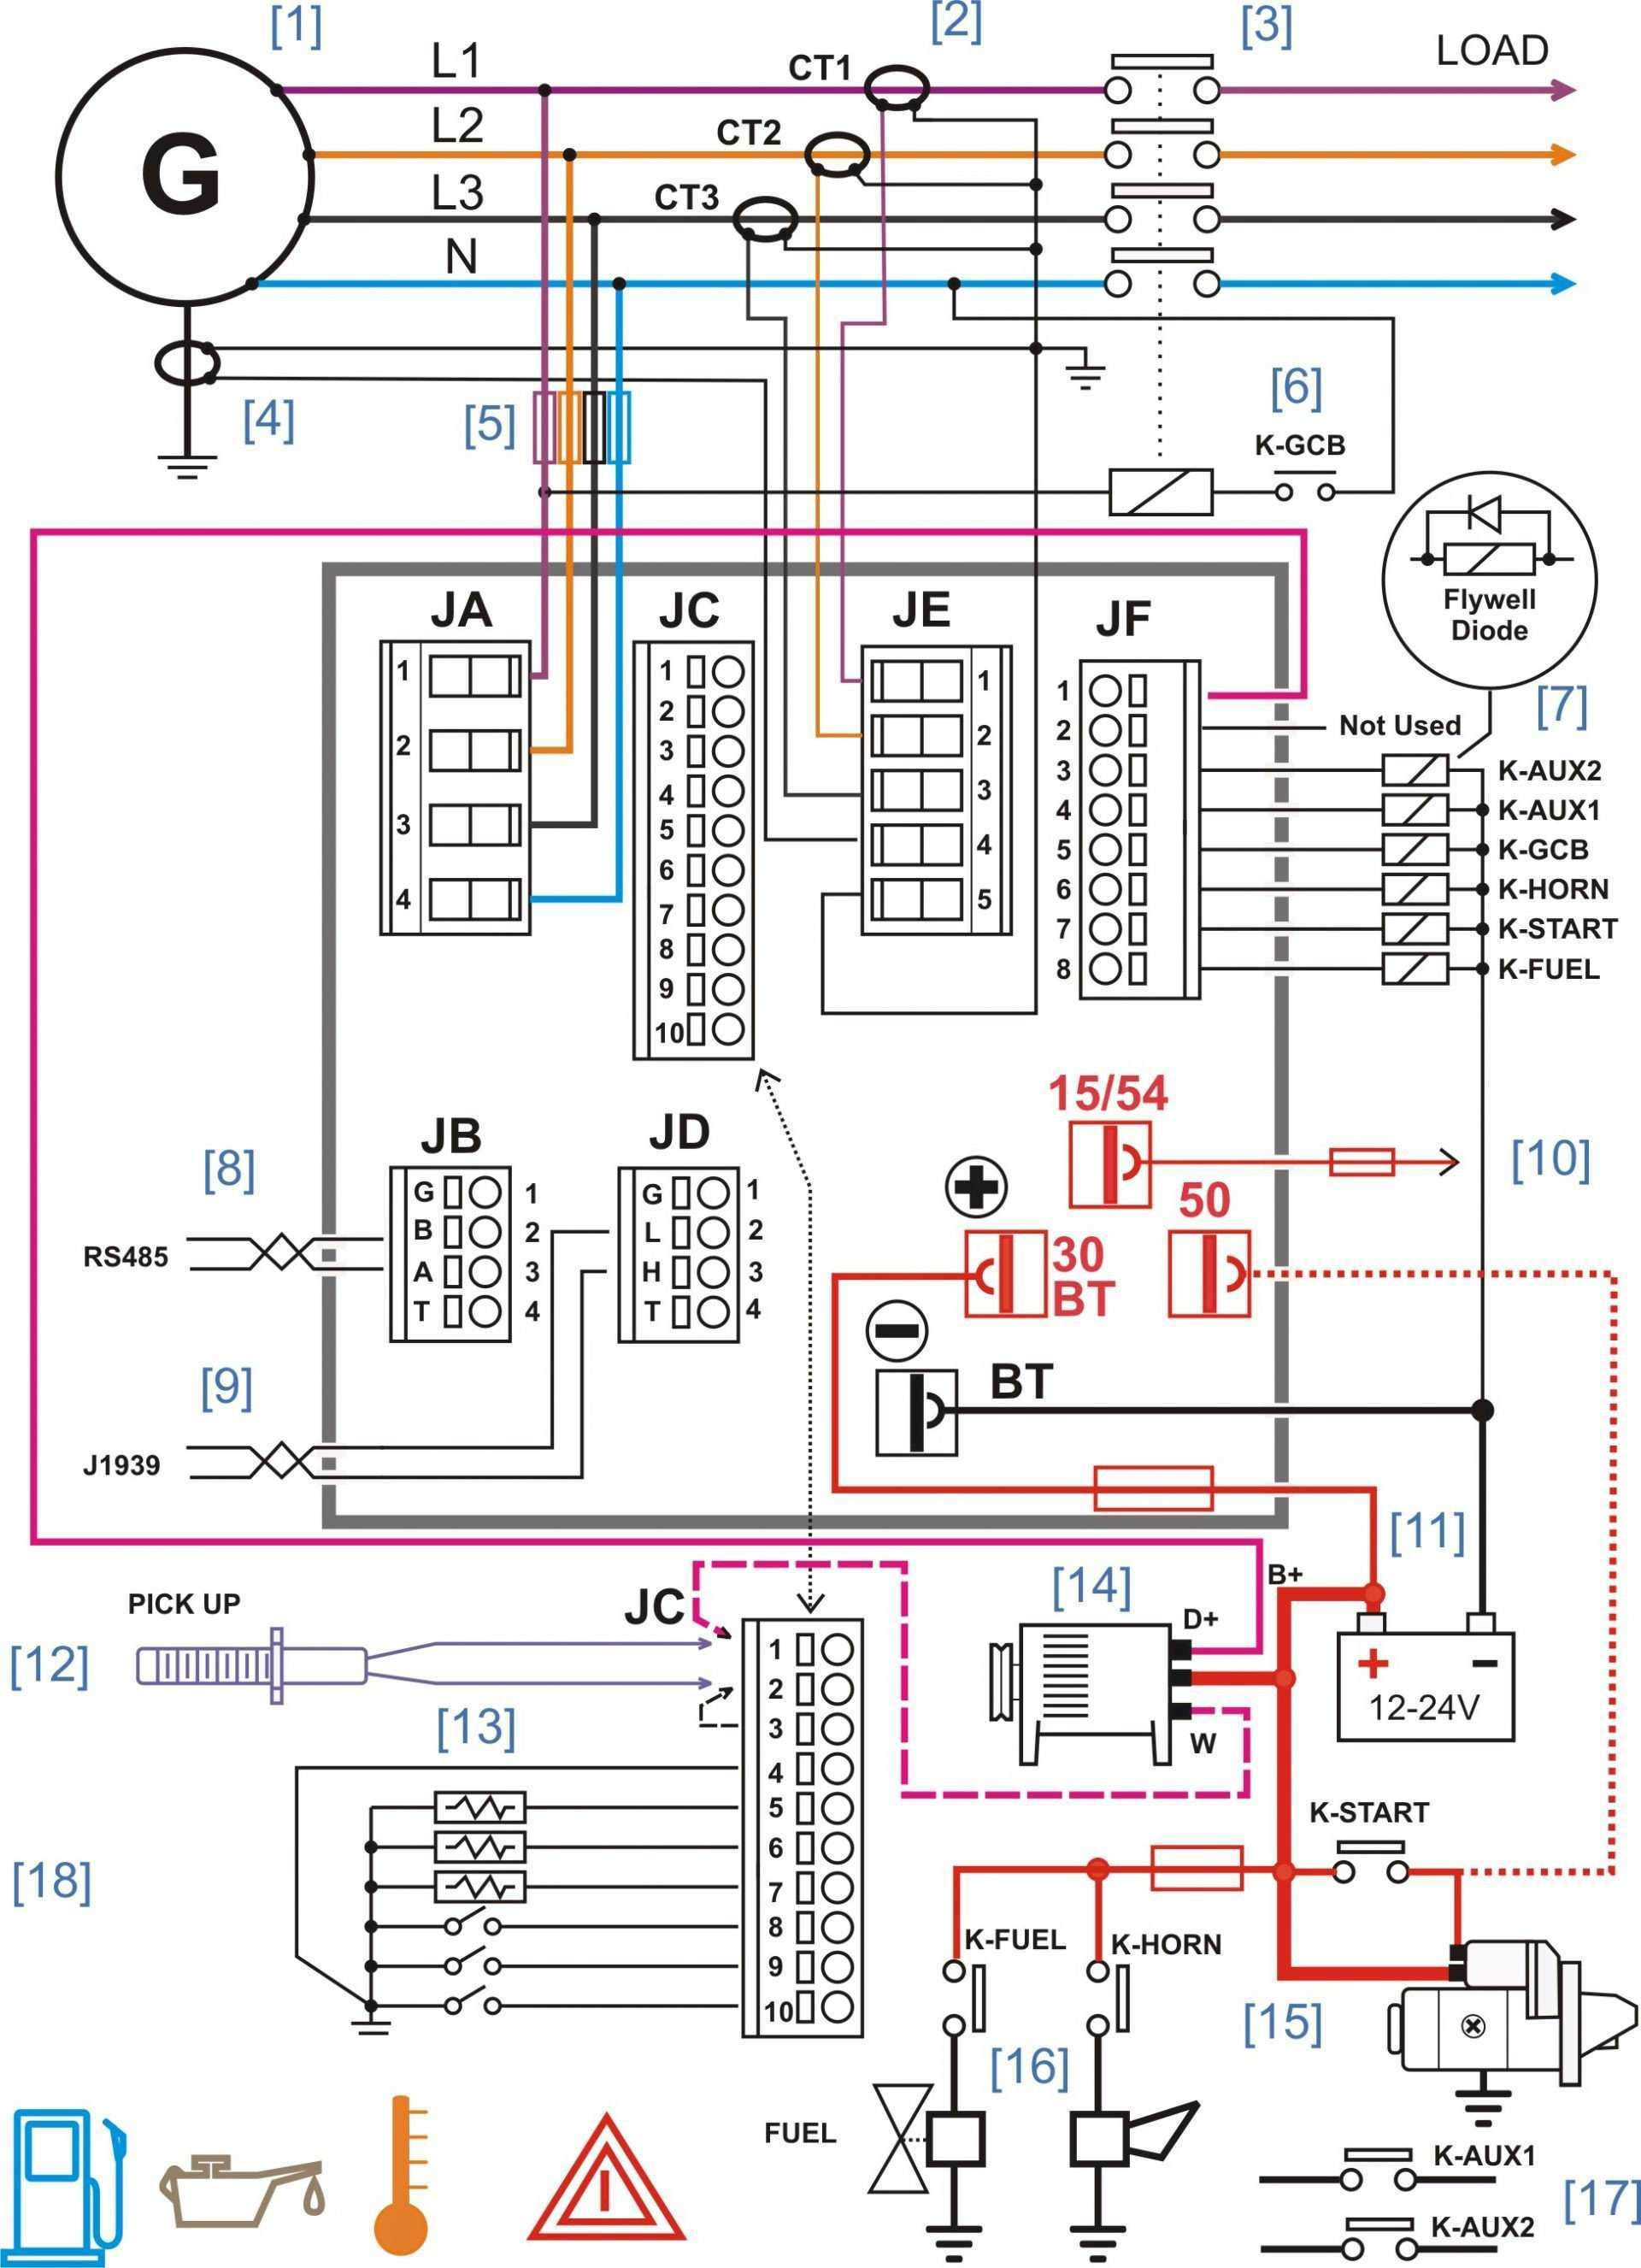 Air Horn Wiring Diagram Lovely Air Horn Wiring Diagram Switch Stebel Nautilus Pact Motorcycle